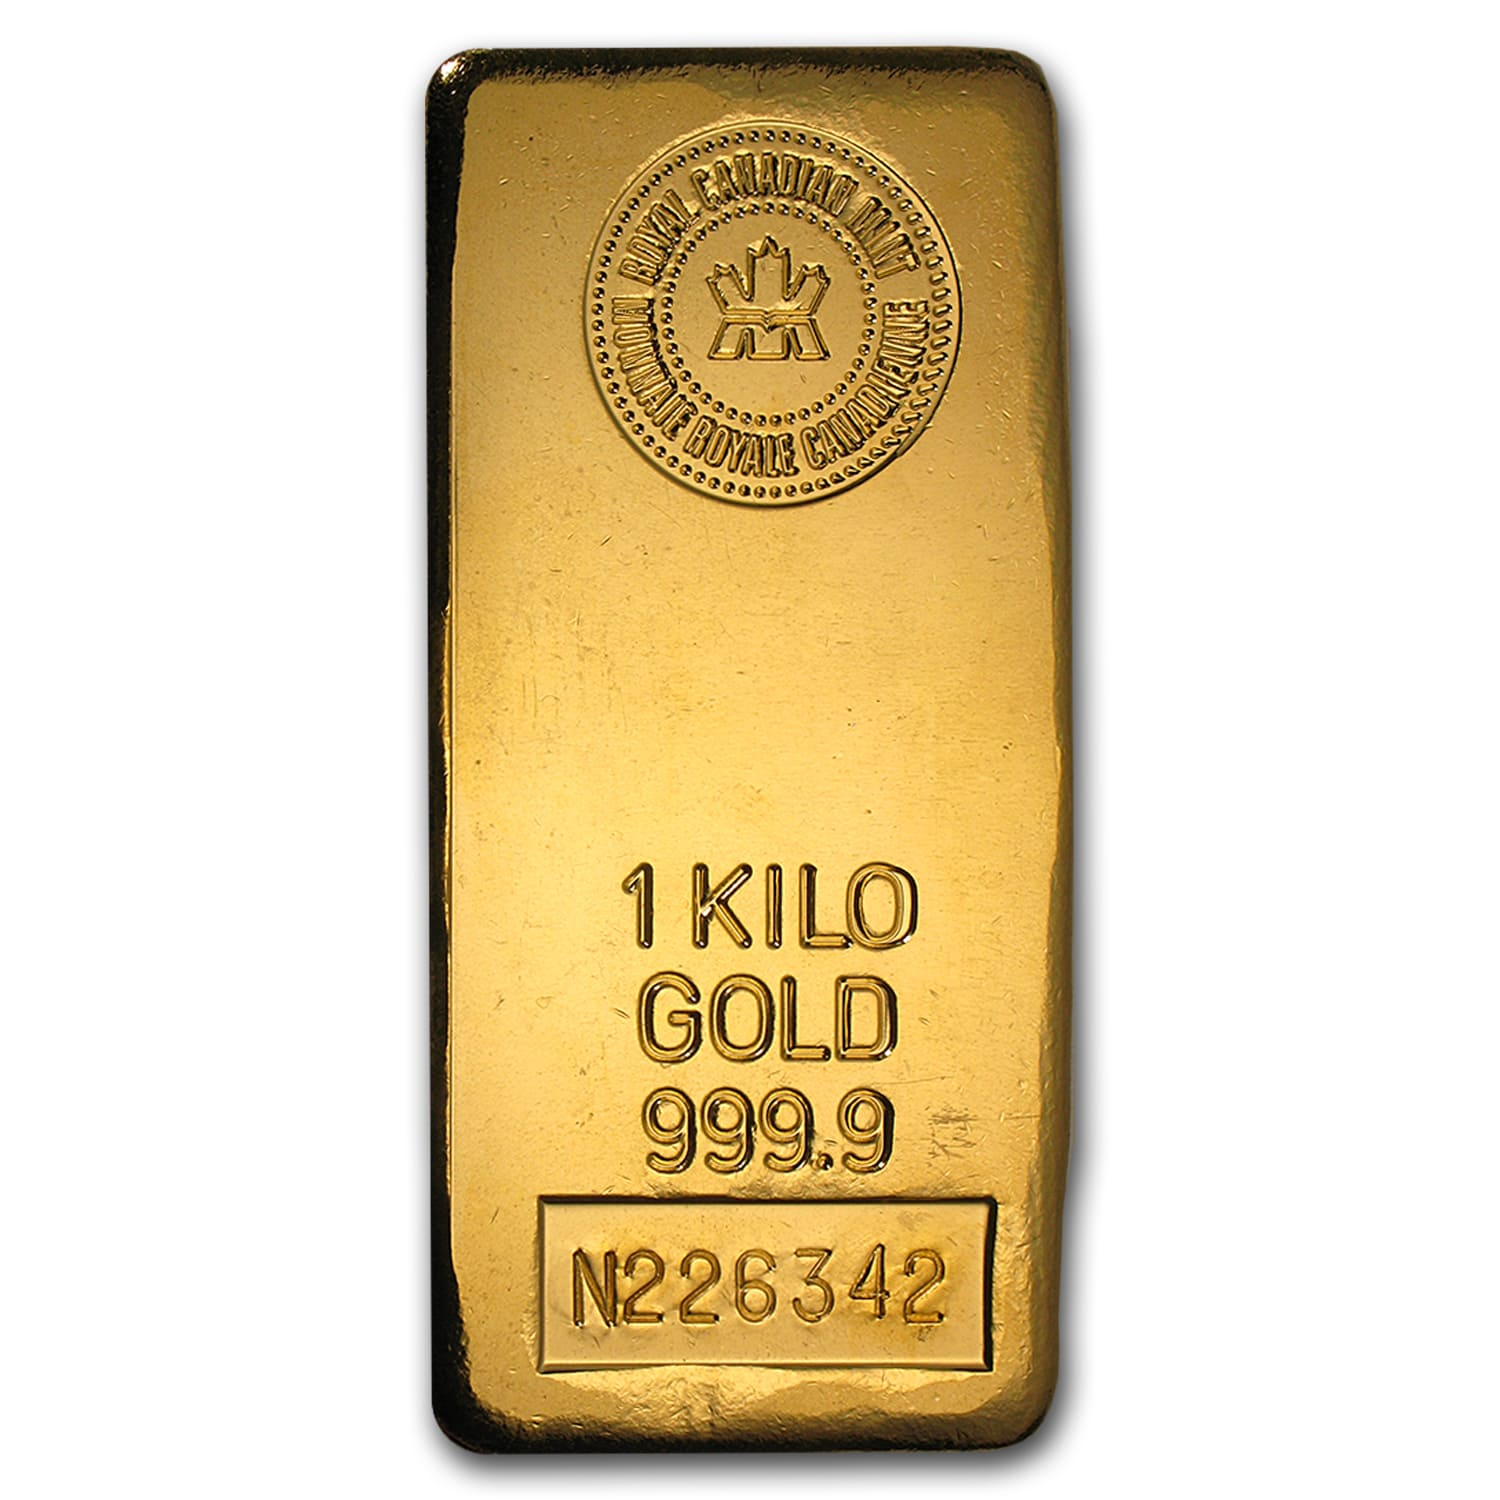 1 kilo Gold Bar - Royal Canadian Mint RCM (Apr 3rd)